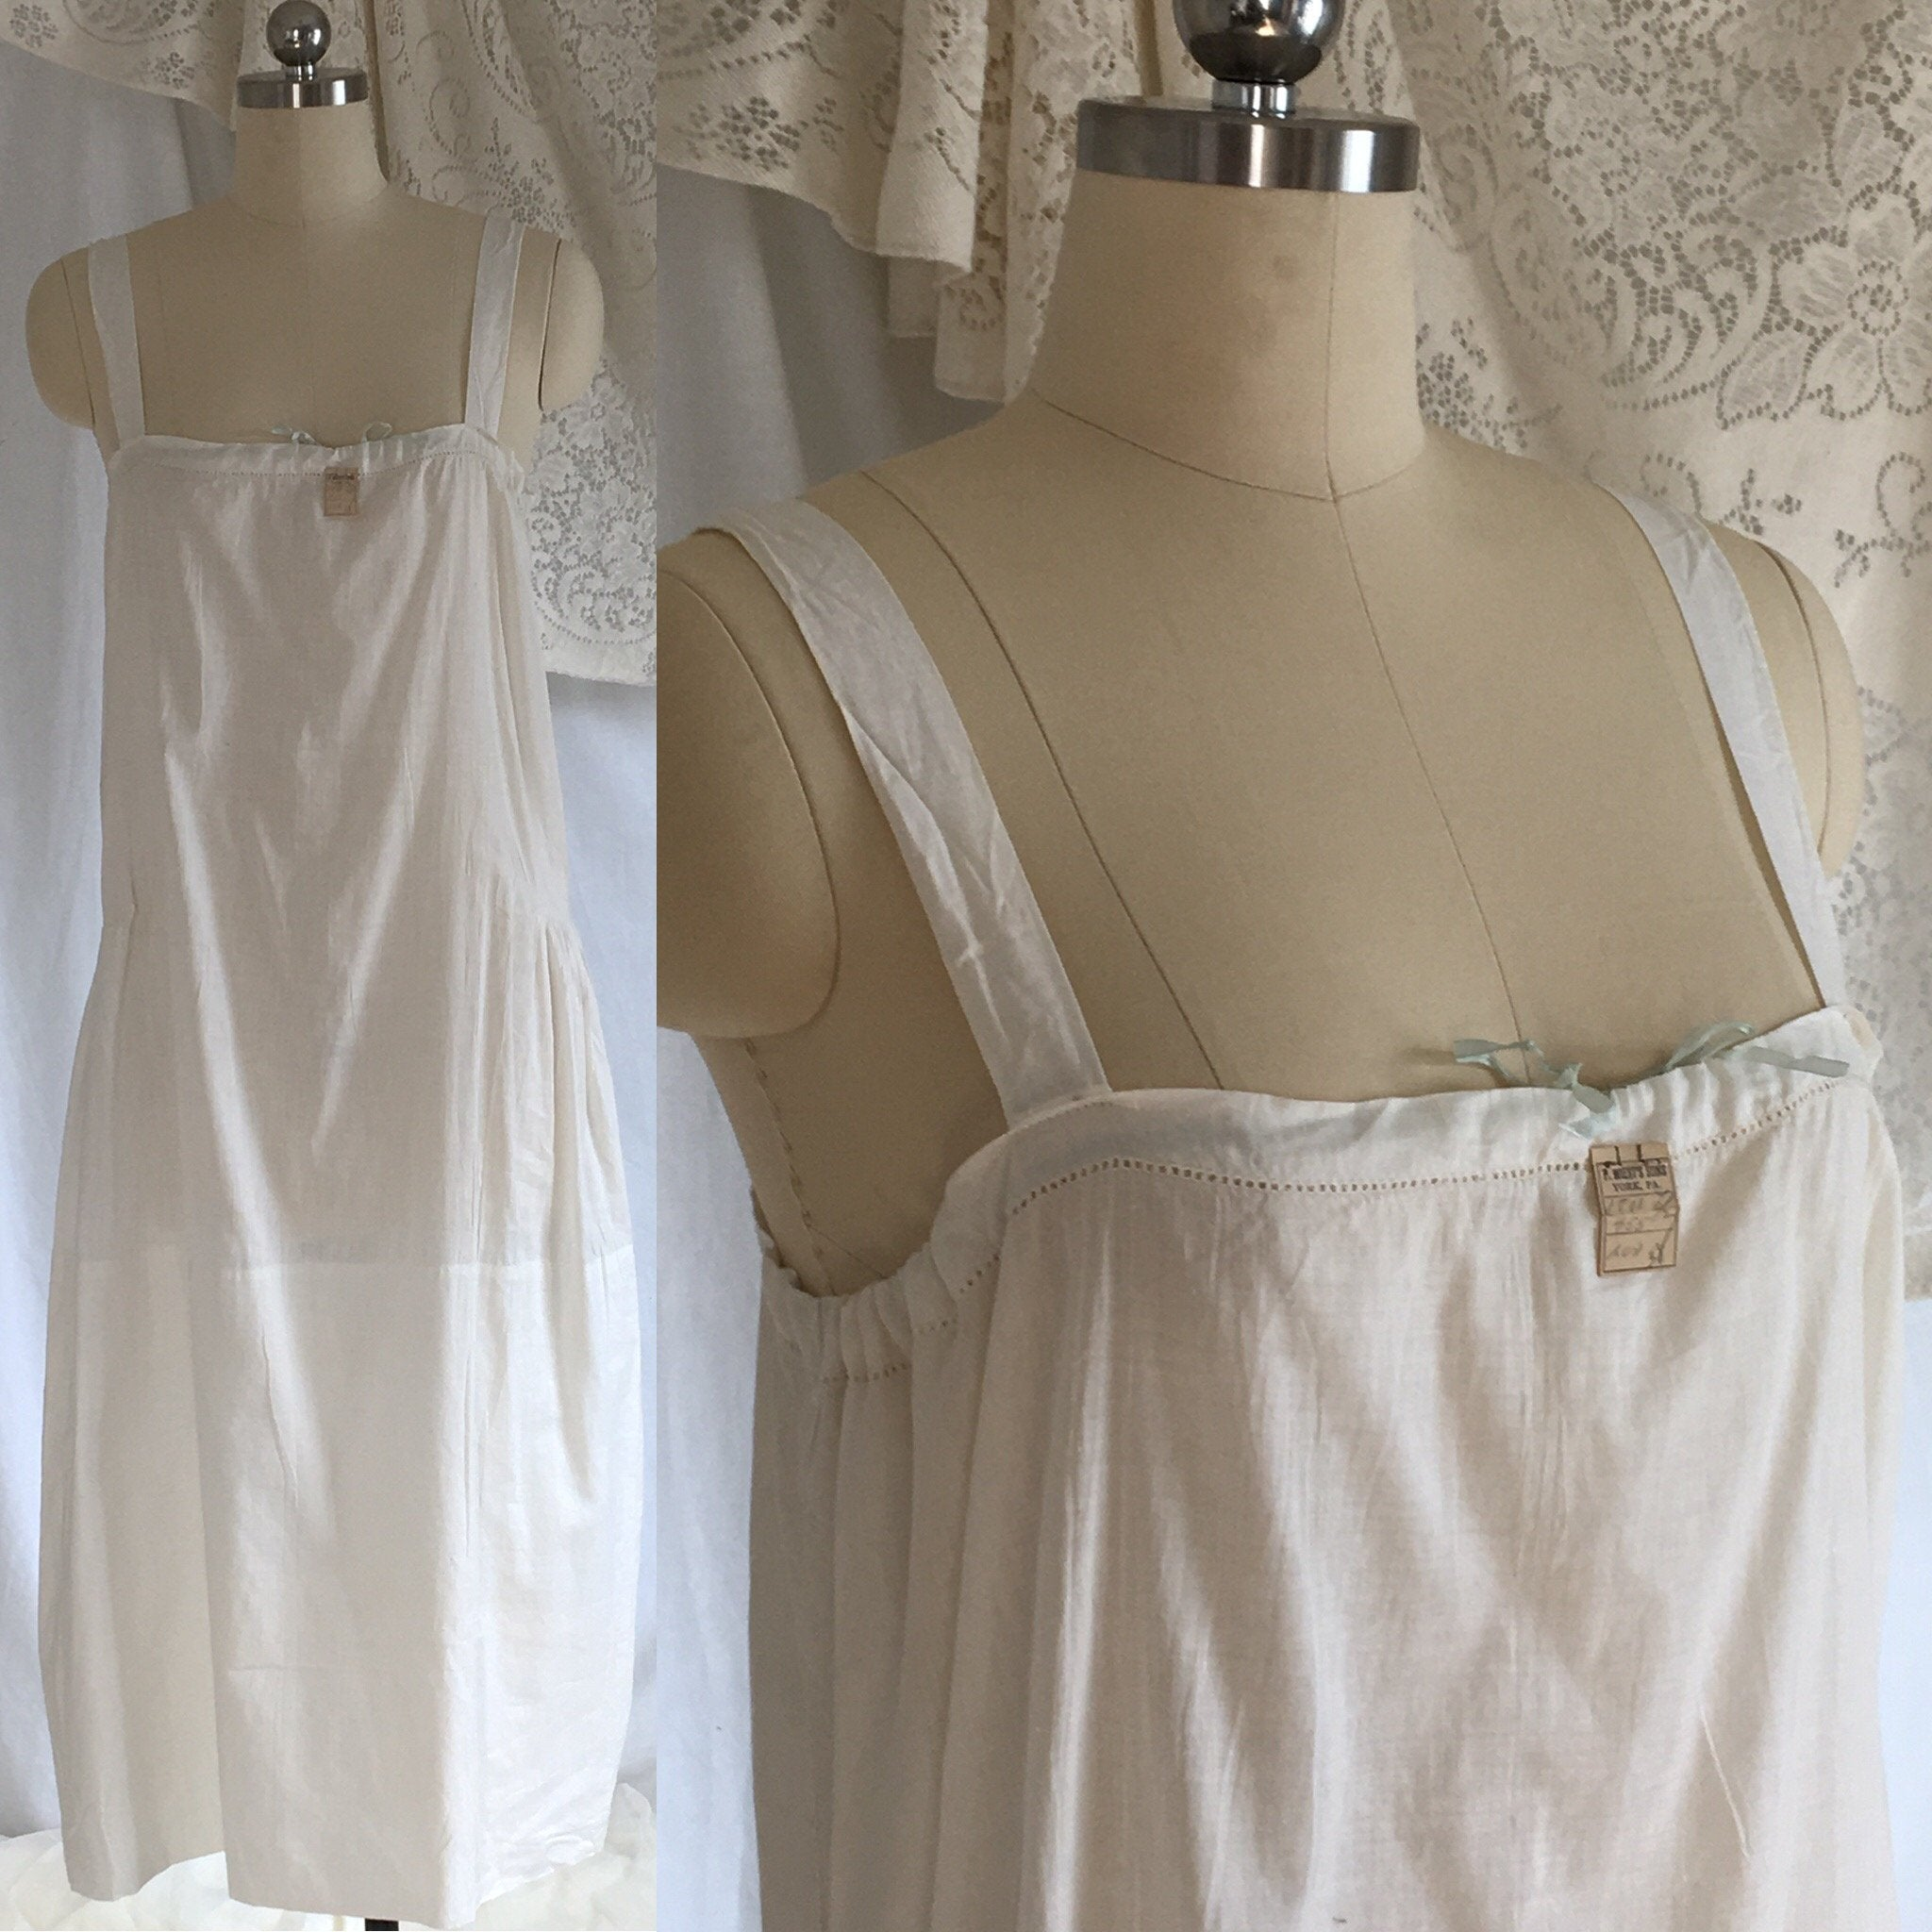 Vintage 1920's Chemise Slip | White Cotton with Ribbon Cinch | New Old Stock | Edwardian Chemise | Slip Dress | Size Free to LG - Daggers & Dames